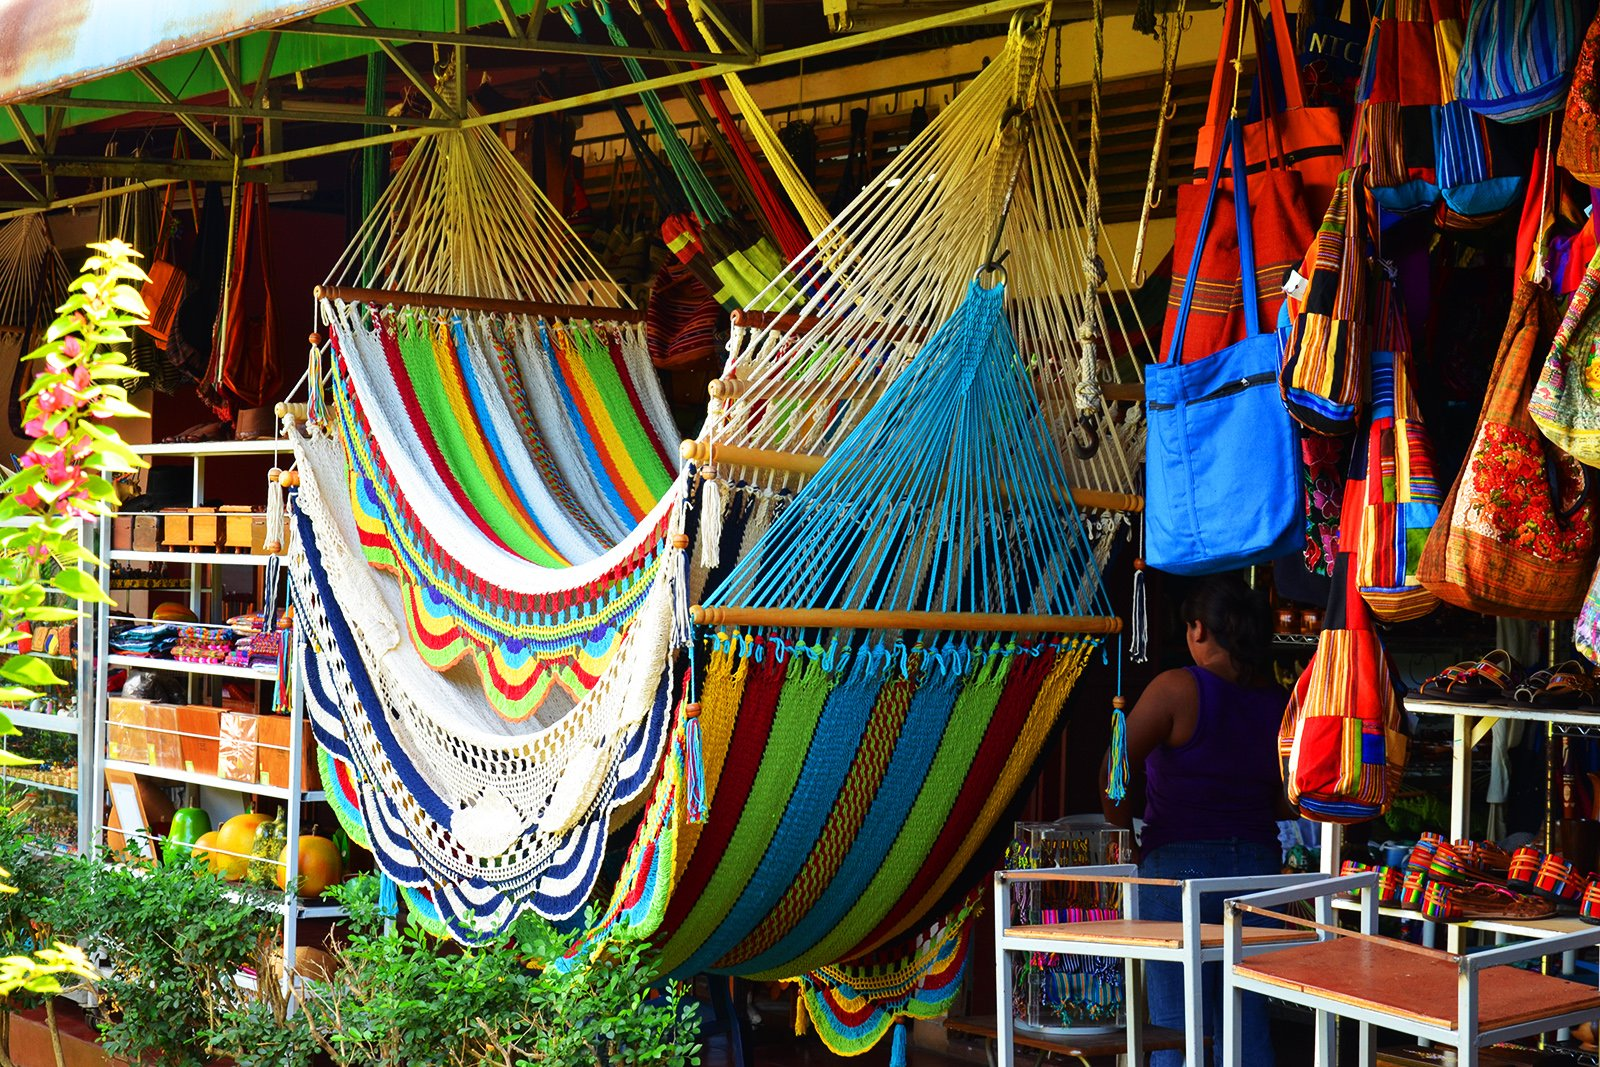 How to buy a hammock at Masaya market in Managua